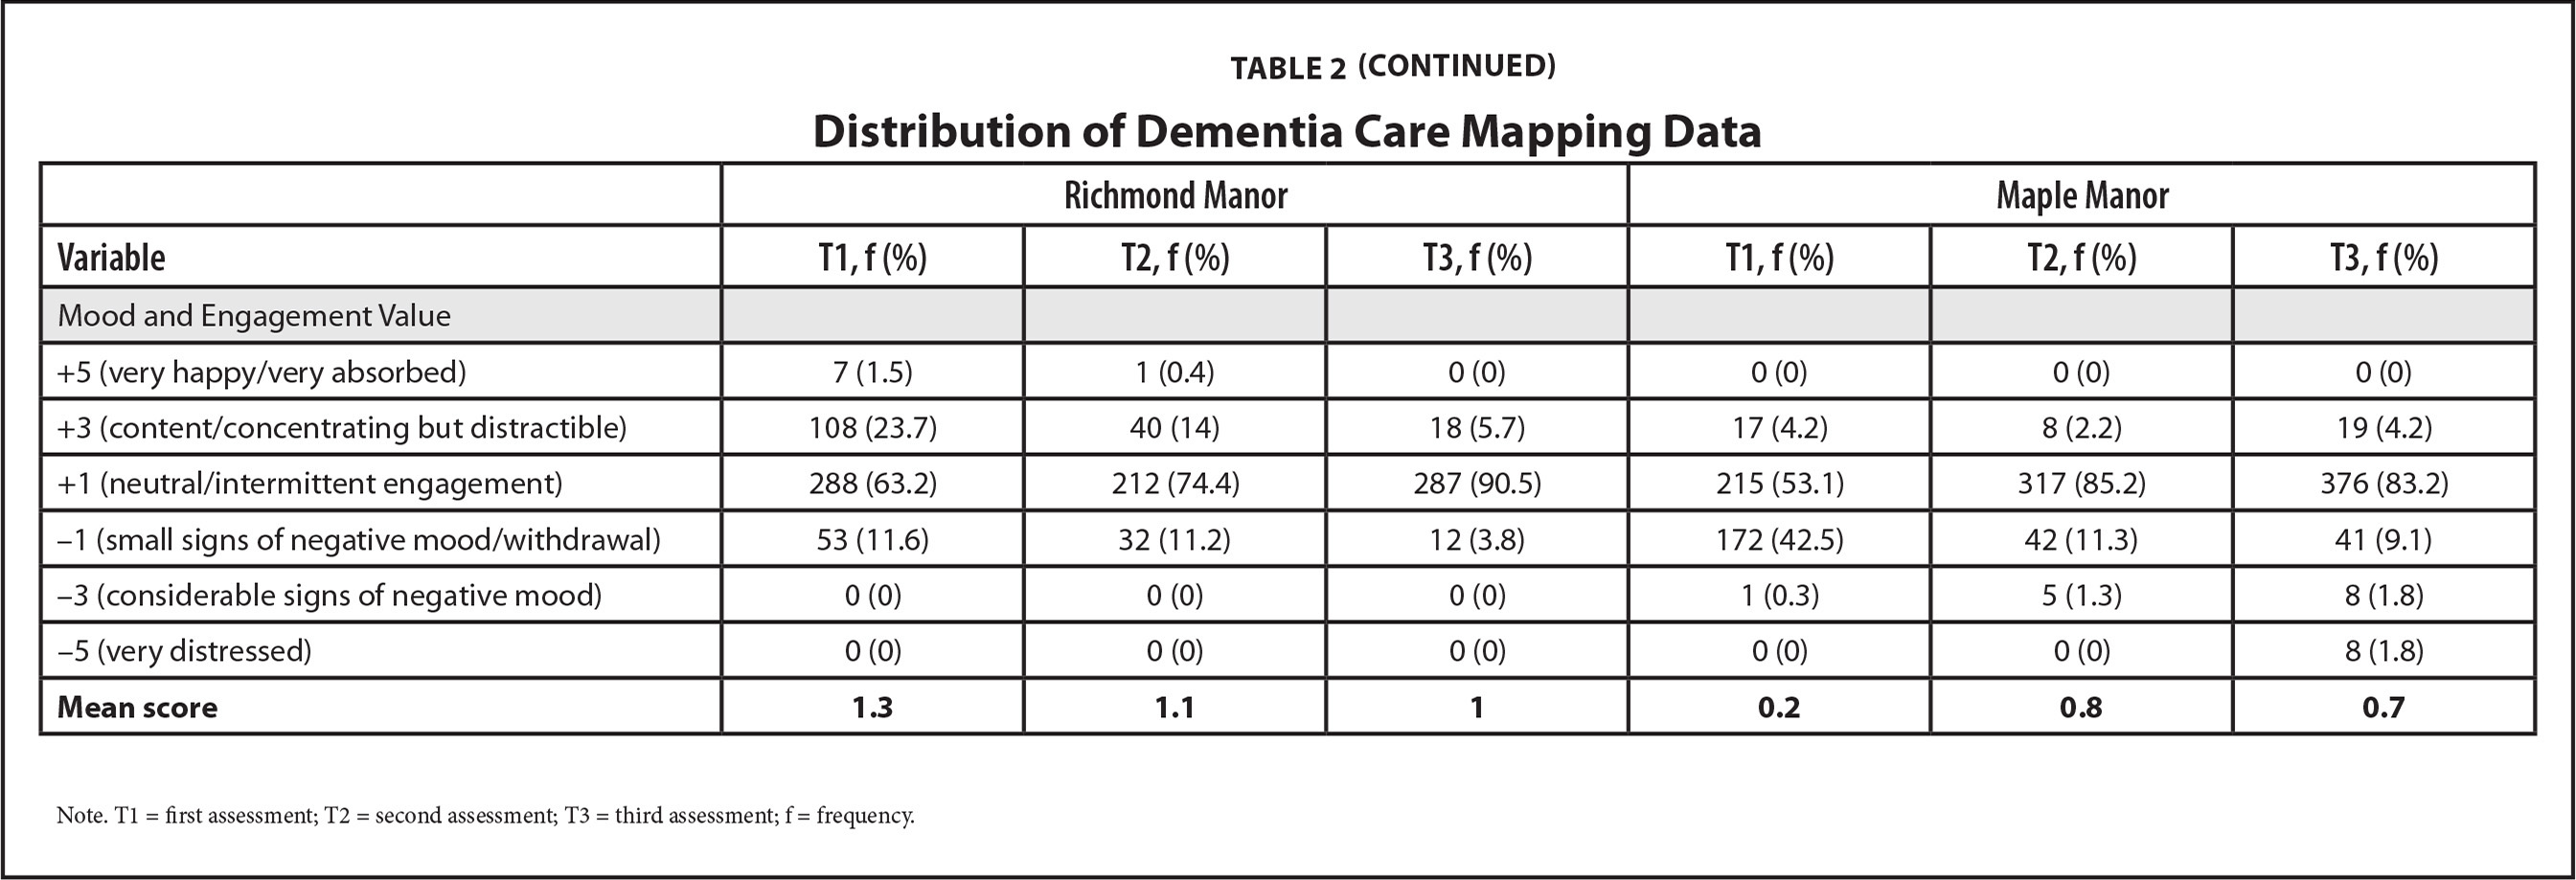 Distribution of Dementia Care Mapping Data